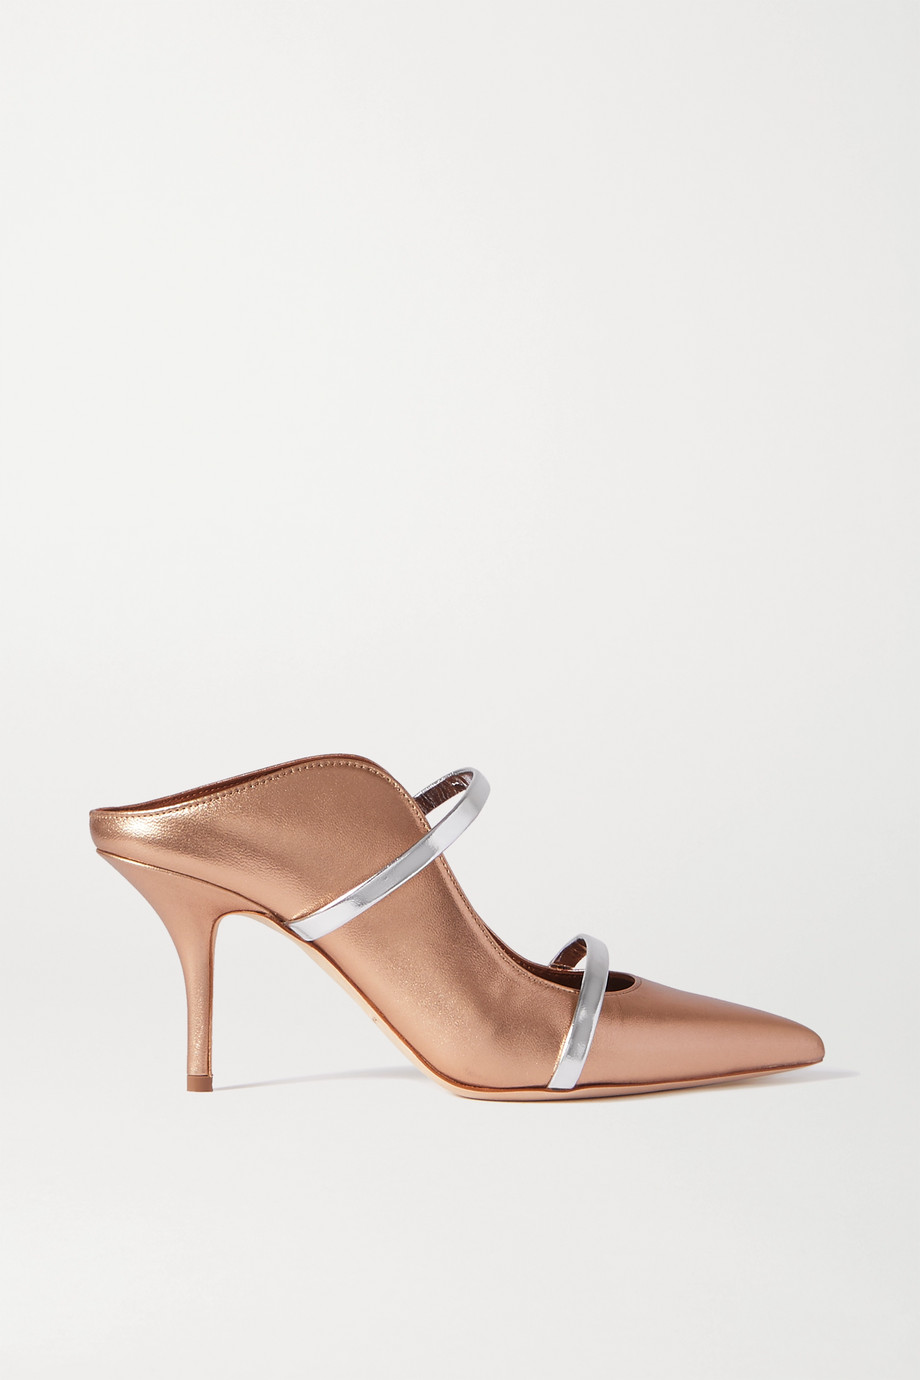 Malone Souliers Maureen 70 metallic leather mules